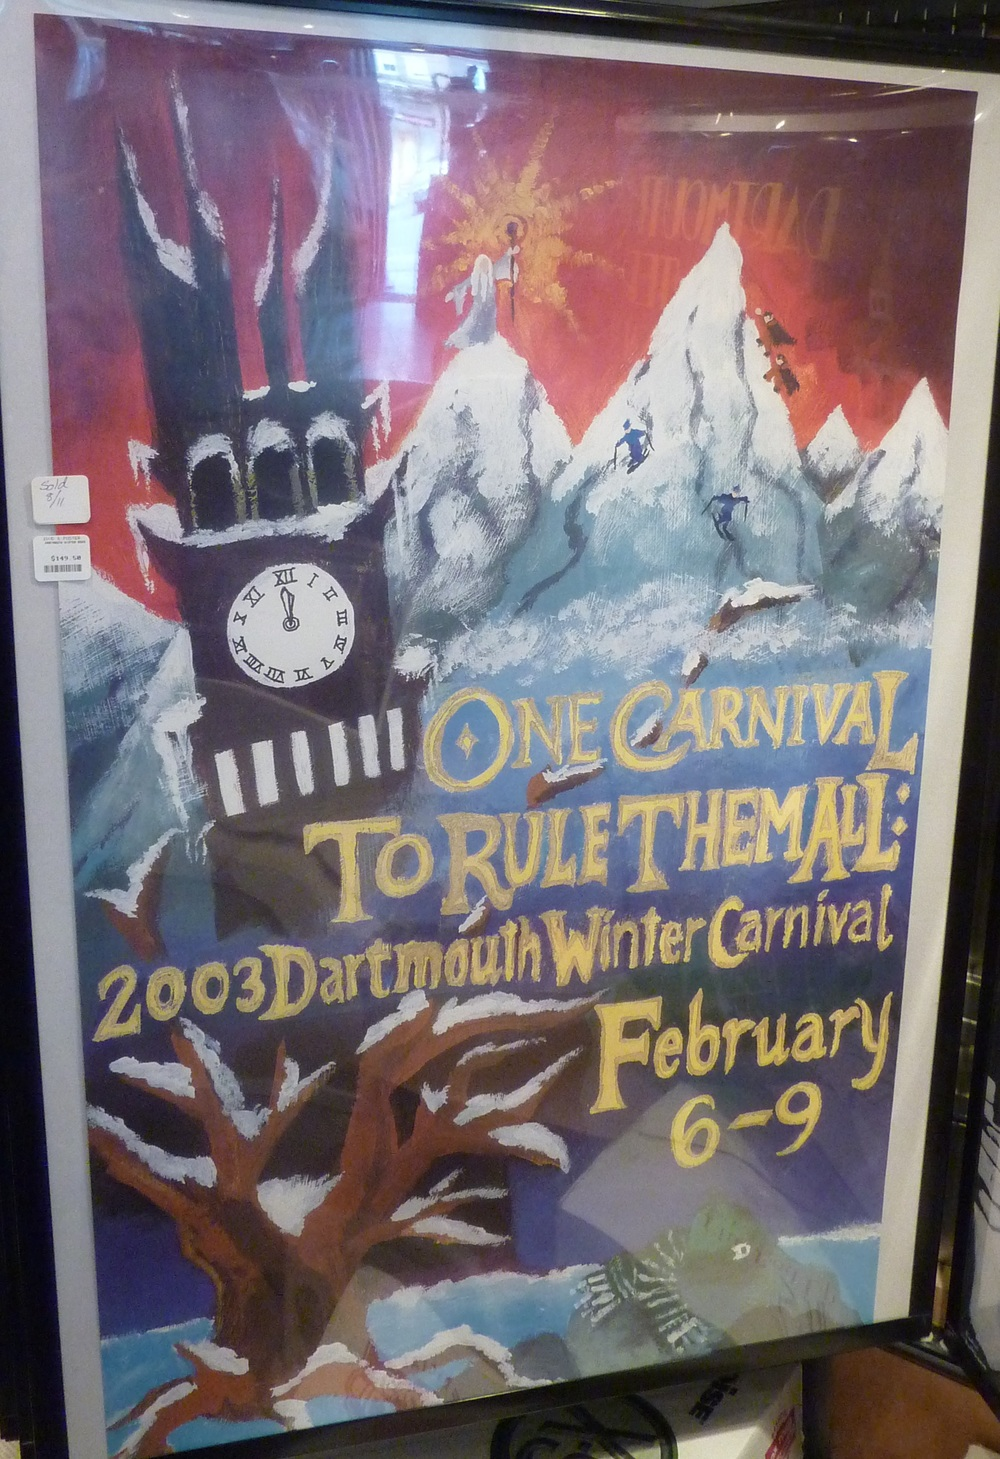 Dartmouth Winter Carnival 2003